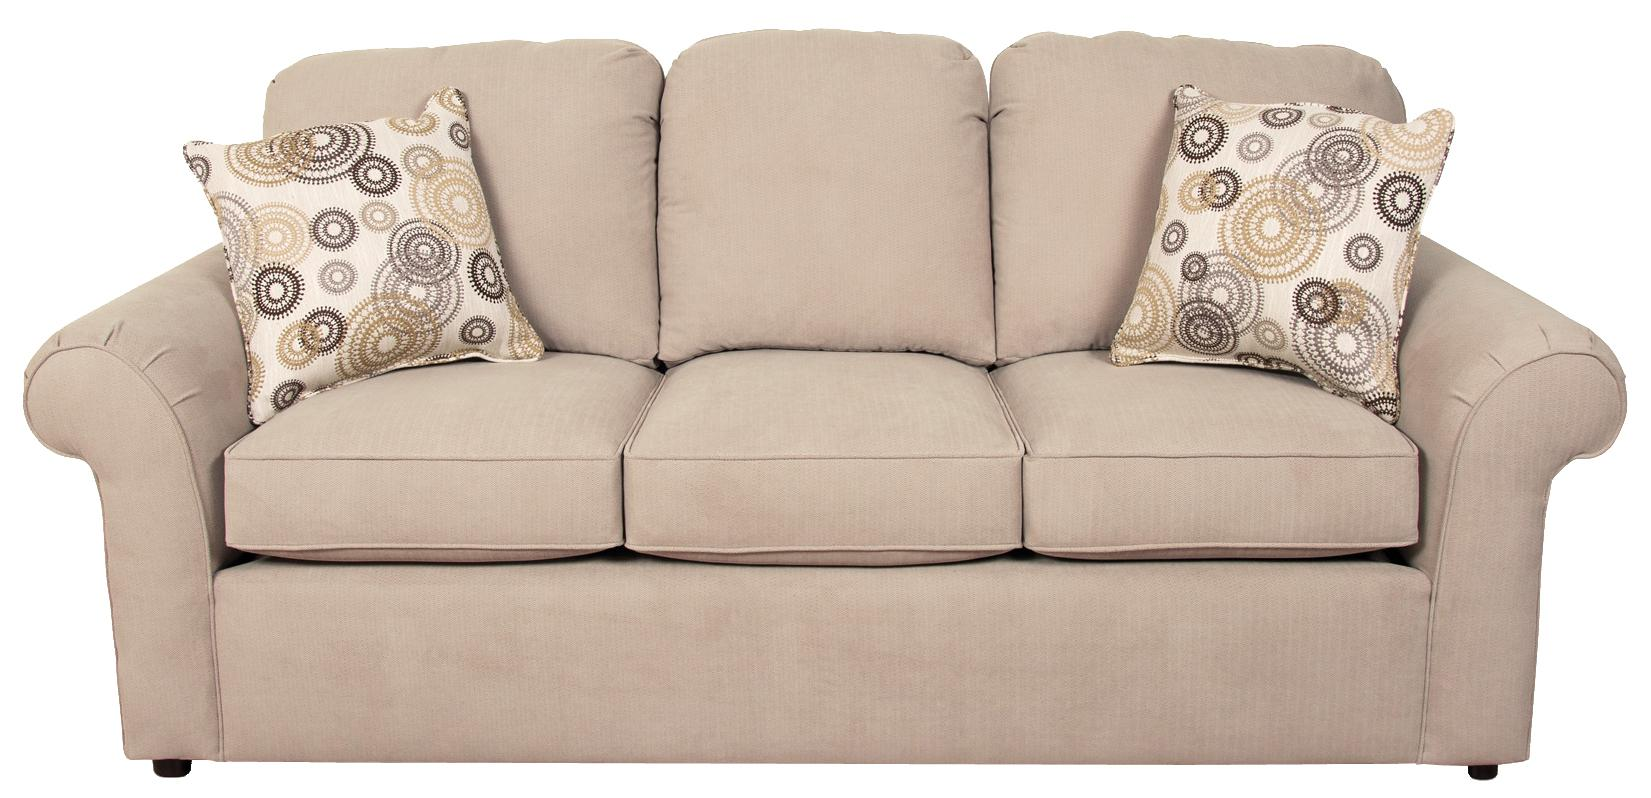 best family sofas uk ethan allen hyde sofa 79 england malibu 2405 casual styled for rooms